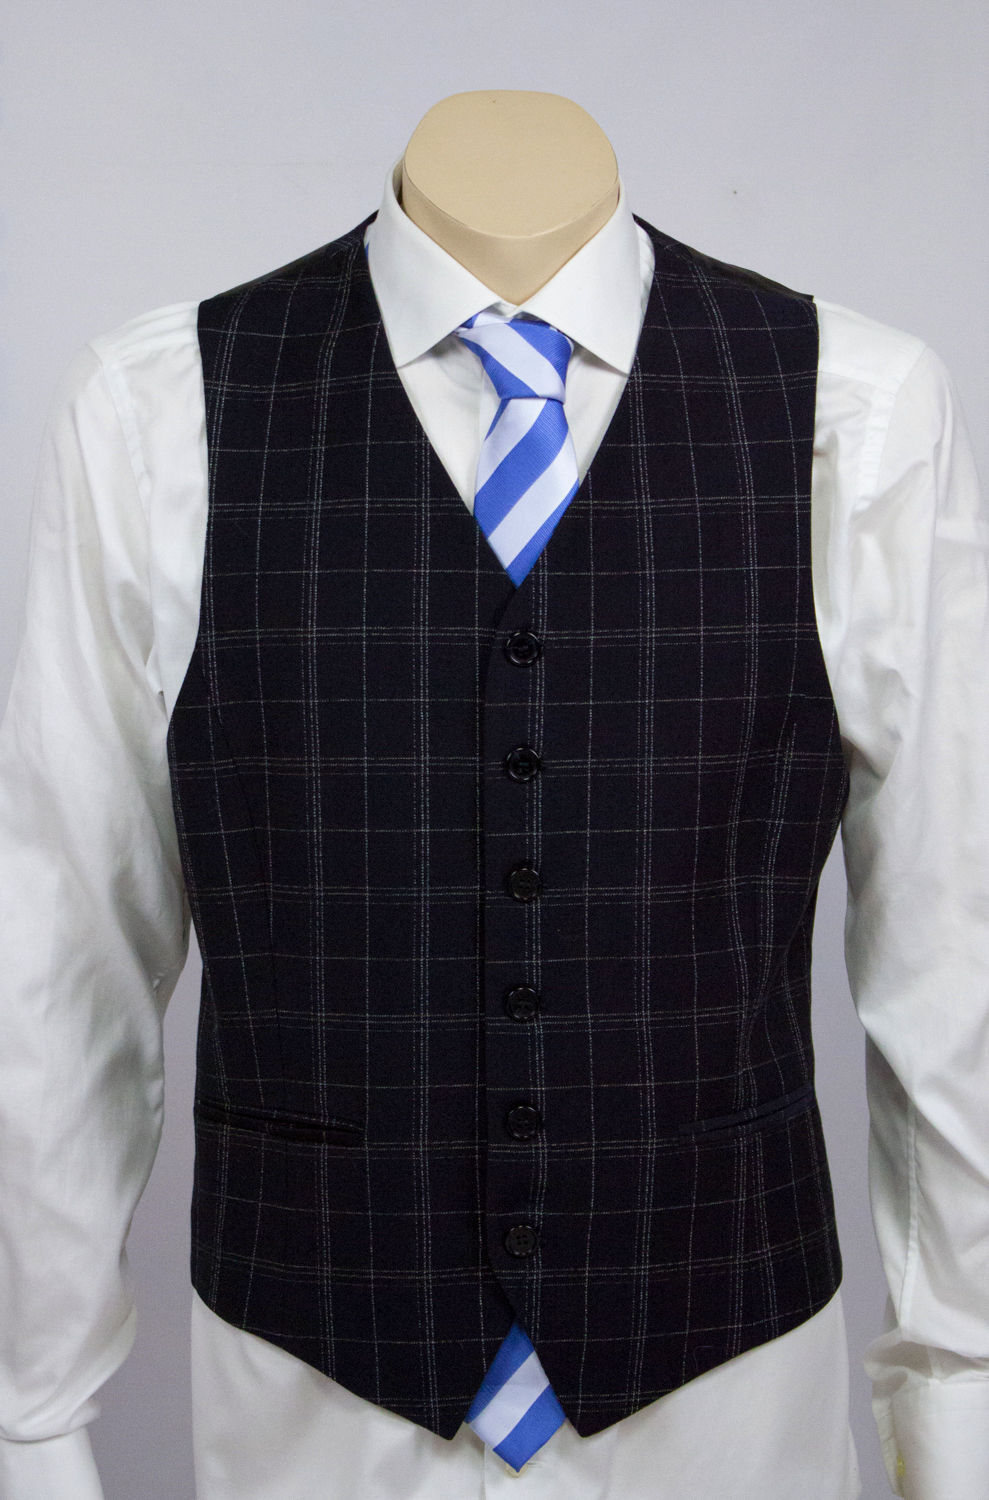 DOLCE & GABBANA Navy Blue Window Pane Suit (Vest+Jacket) USA 38R - secondfirst